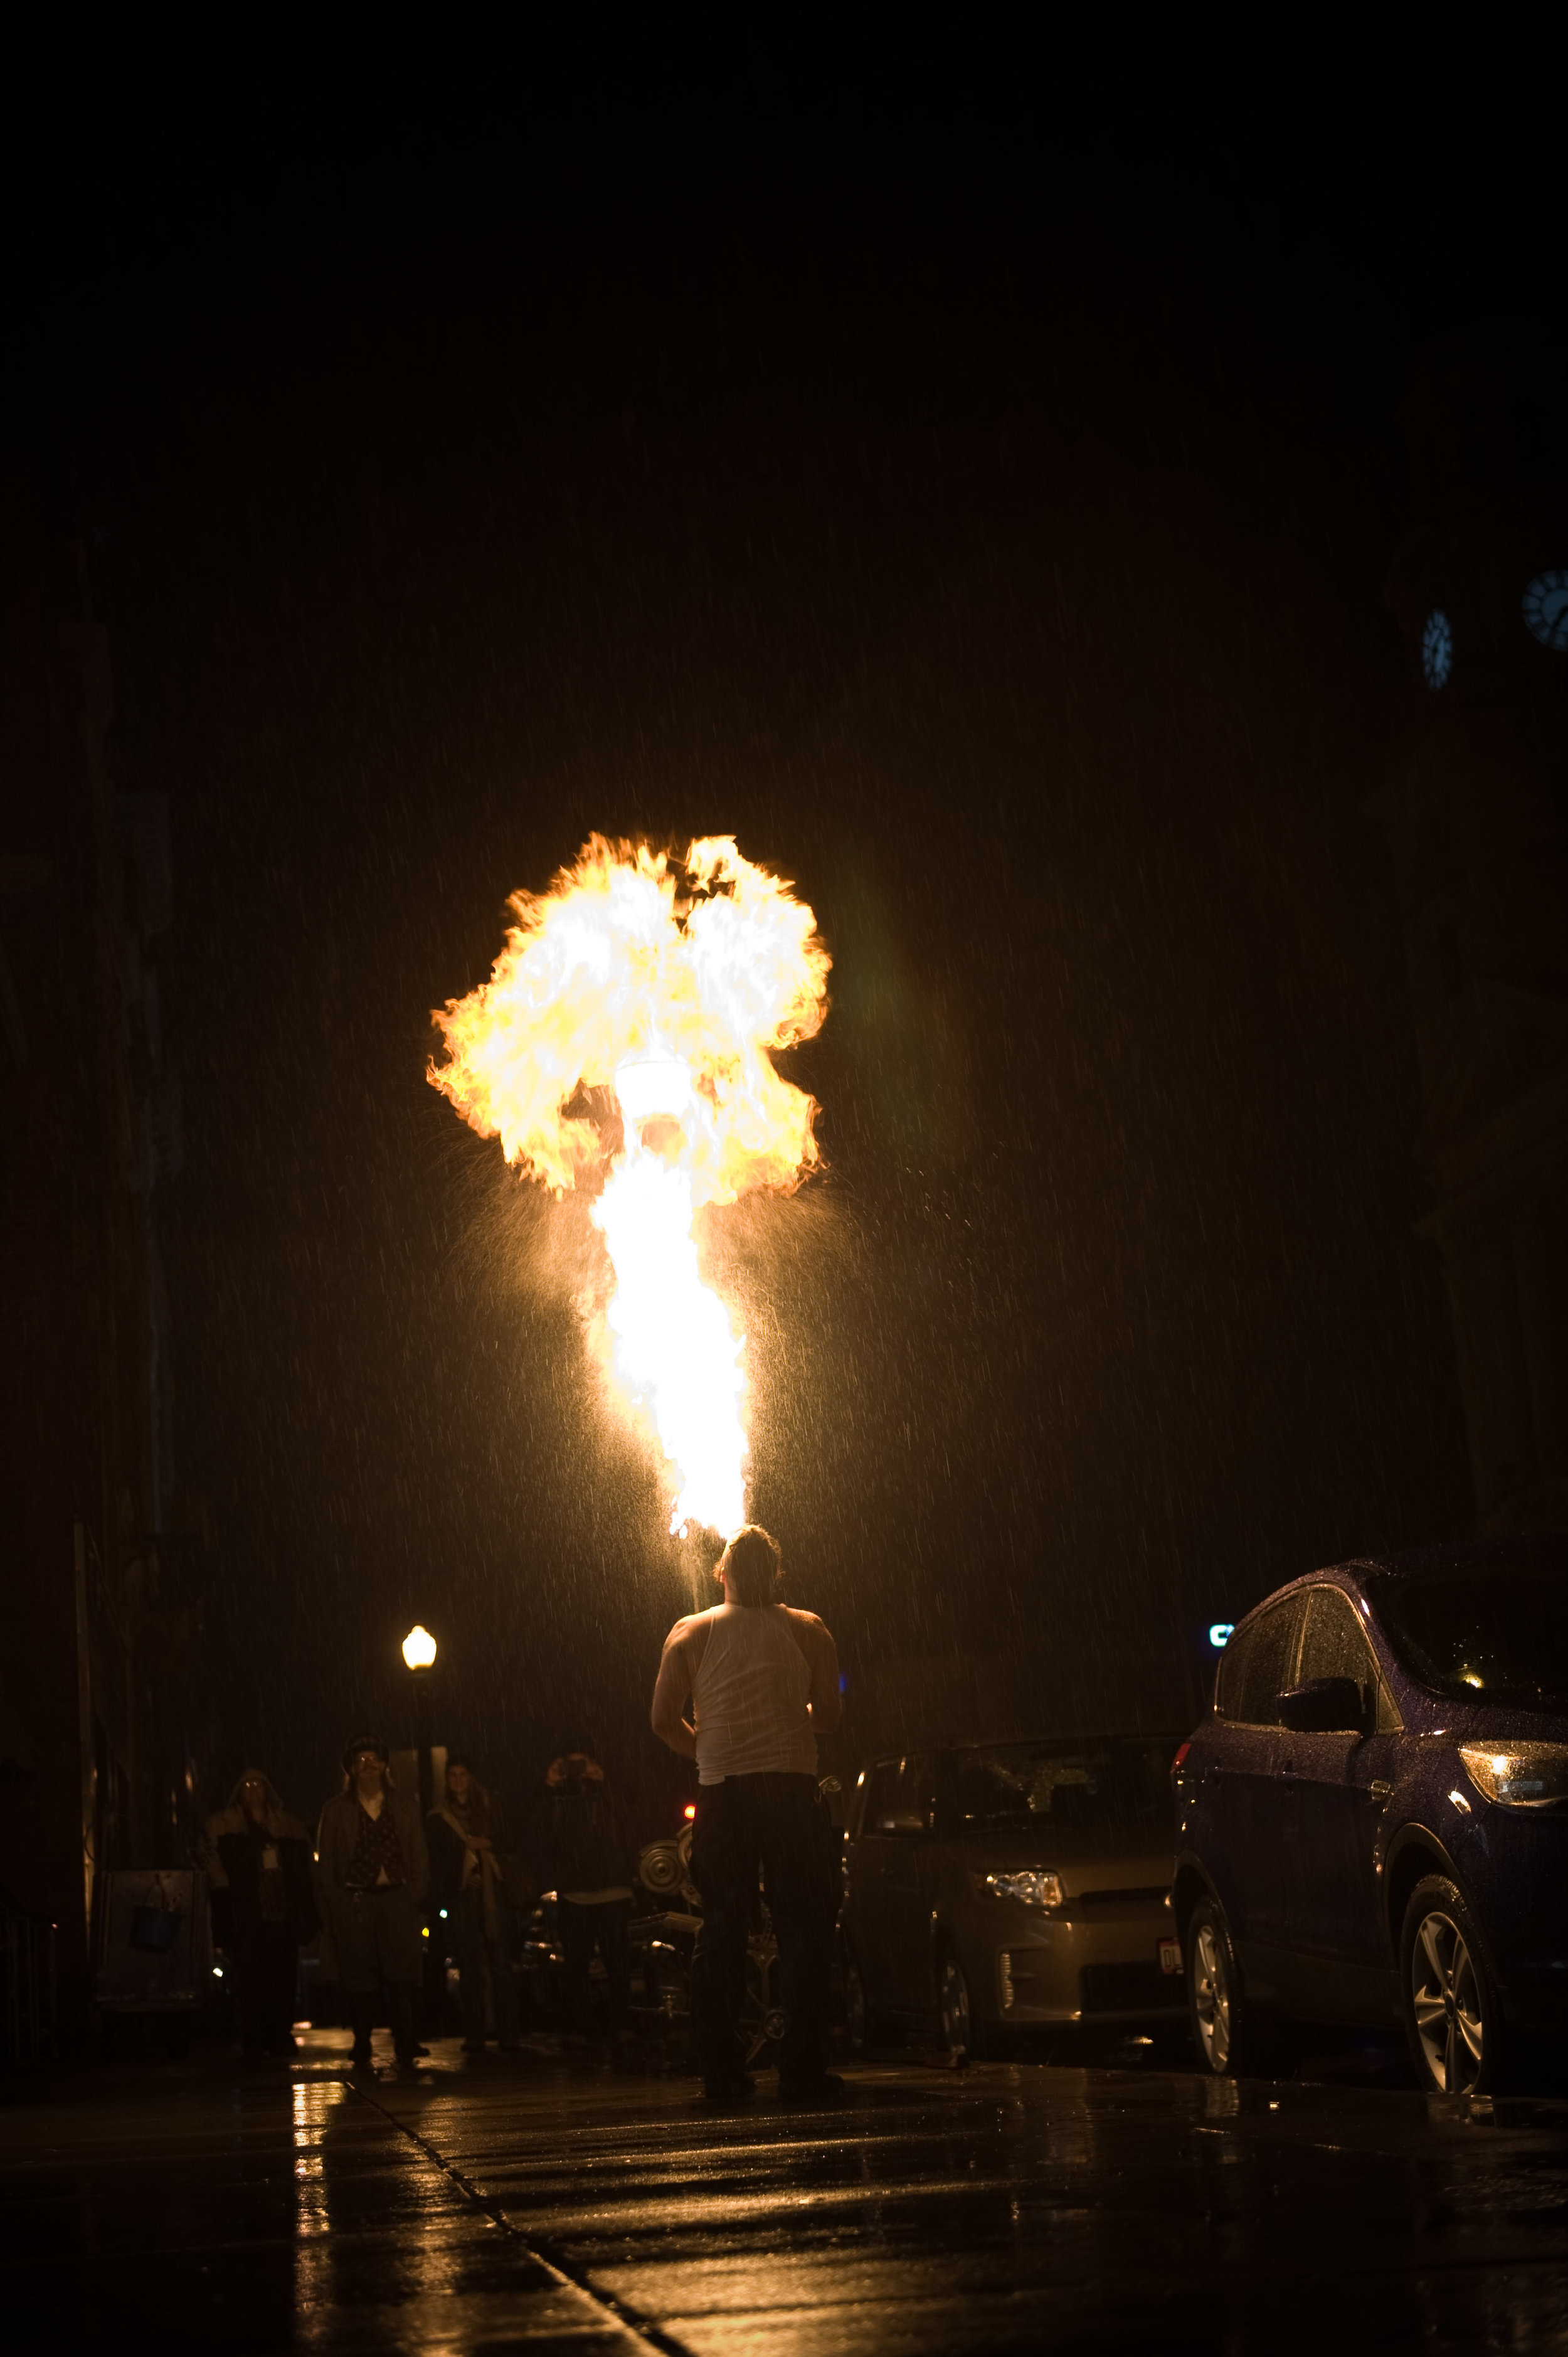 """The Burning Dawn  will be adding the """"Fire"""" to the  Fire and Ice First Friday  in Marietta, Ohio, at the  Armory Square . The Burning Dawn incorporates live drumming into their fire breathing for a really cool, exciting live show. Photo by  Michelle Waters ."""